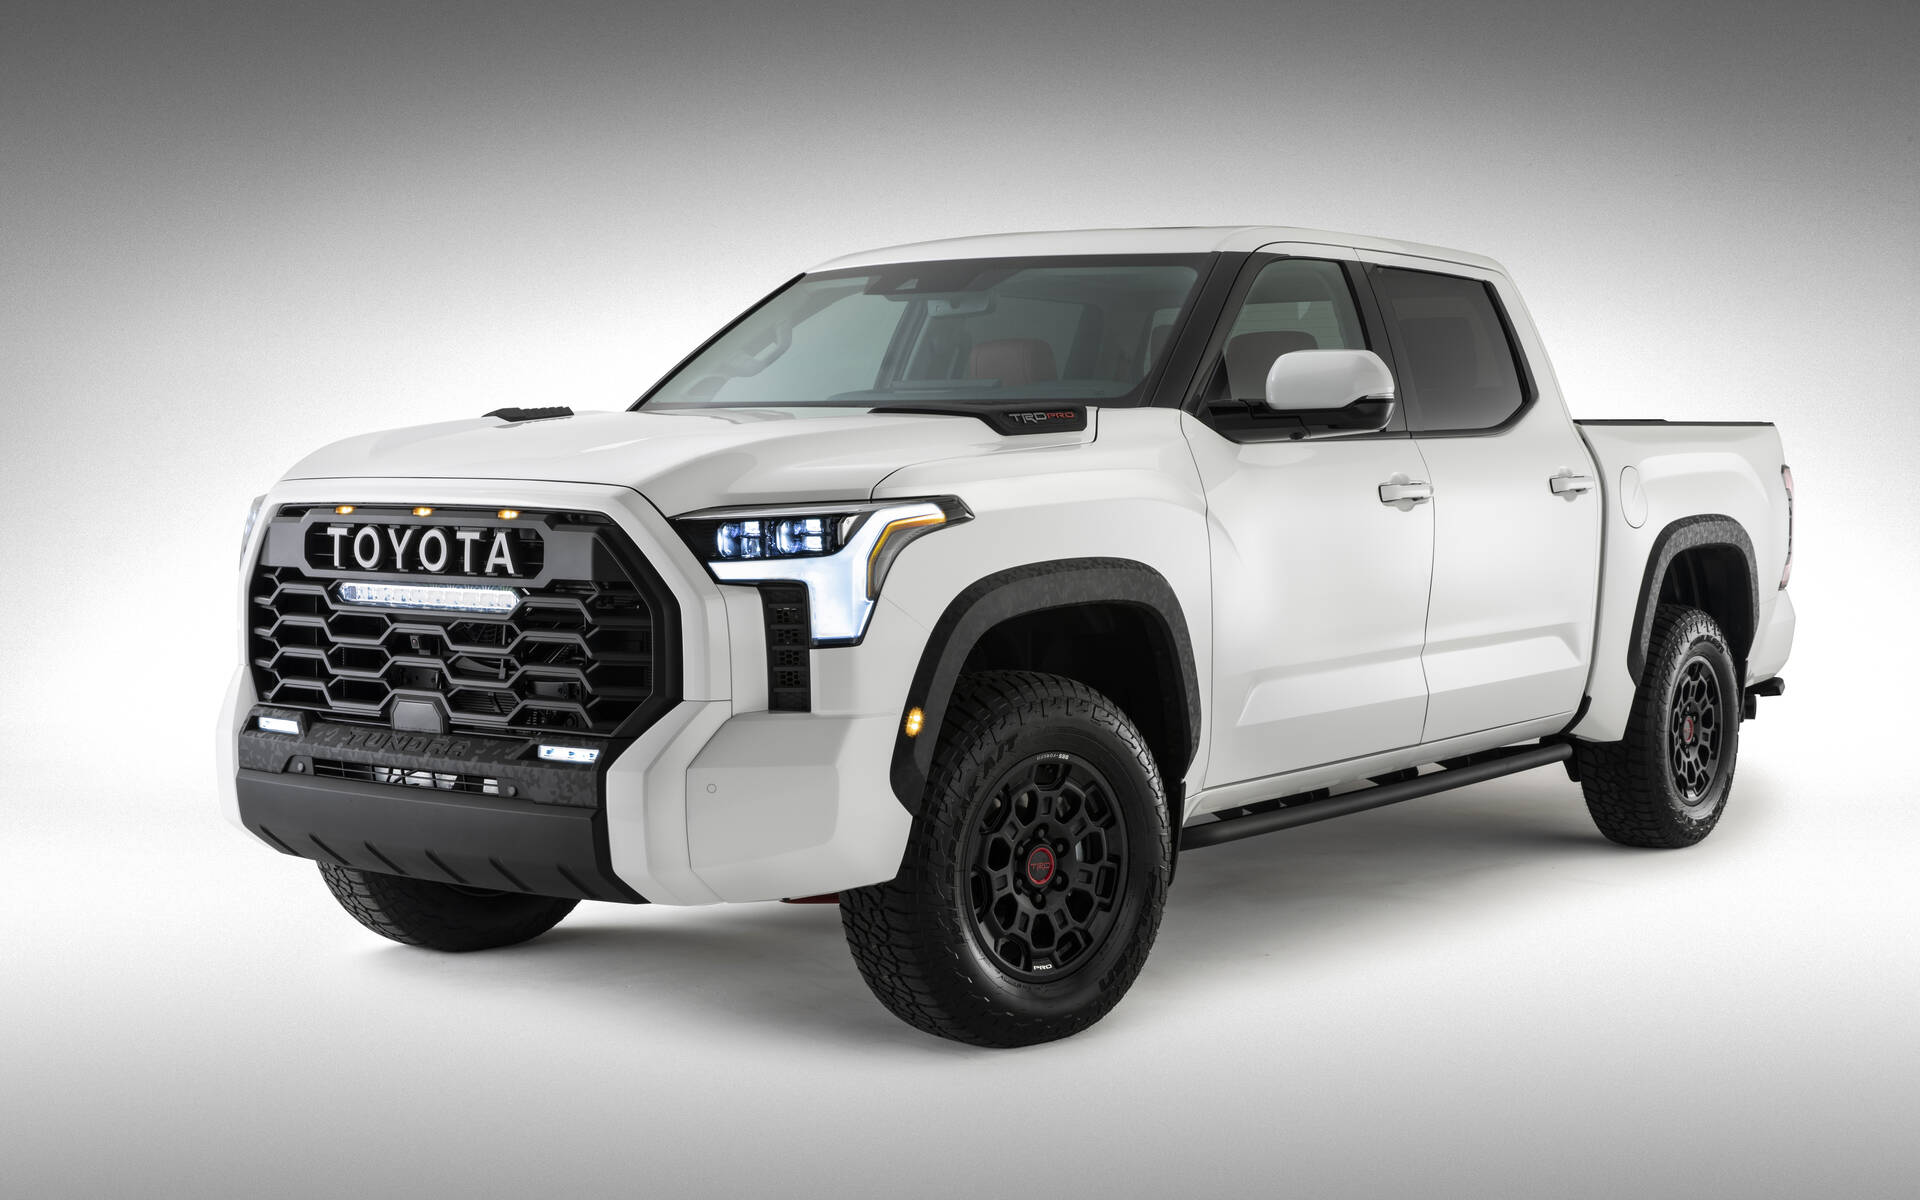 Calendrier Salaire Prof 2022 Oops, Here's the 2022 Toyota Tundra Before You're Supposed to See